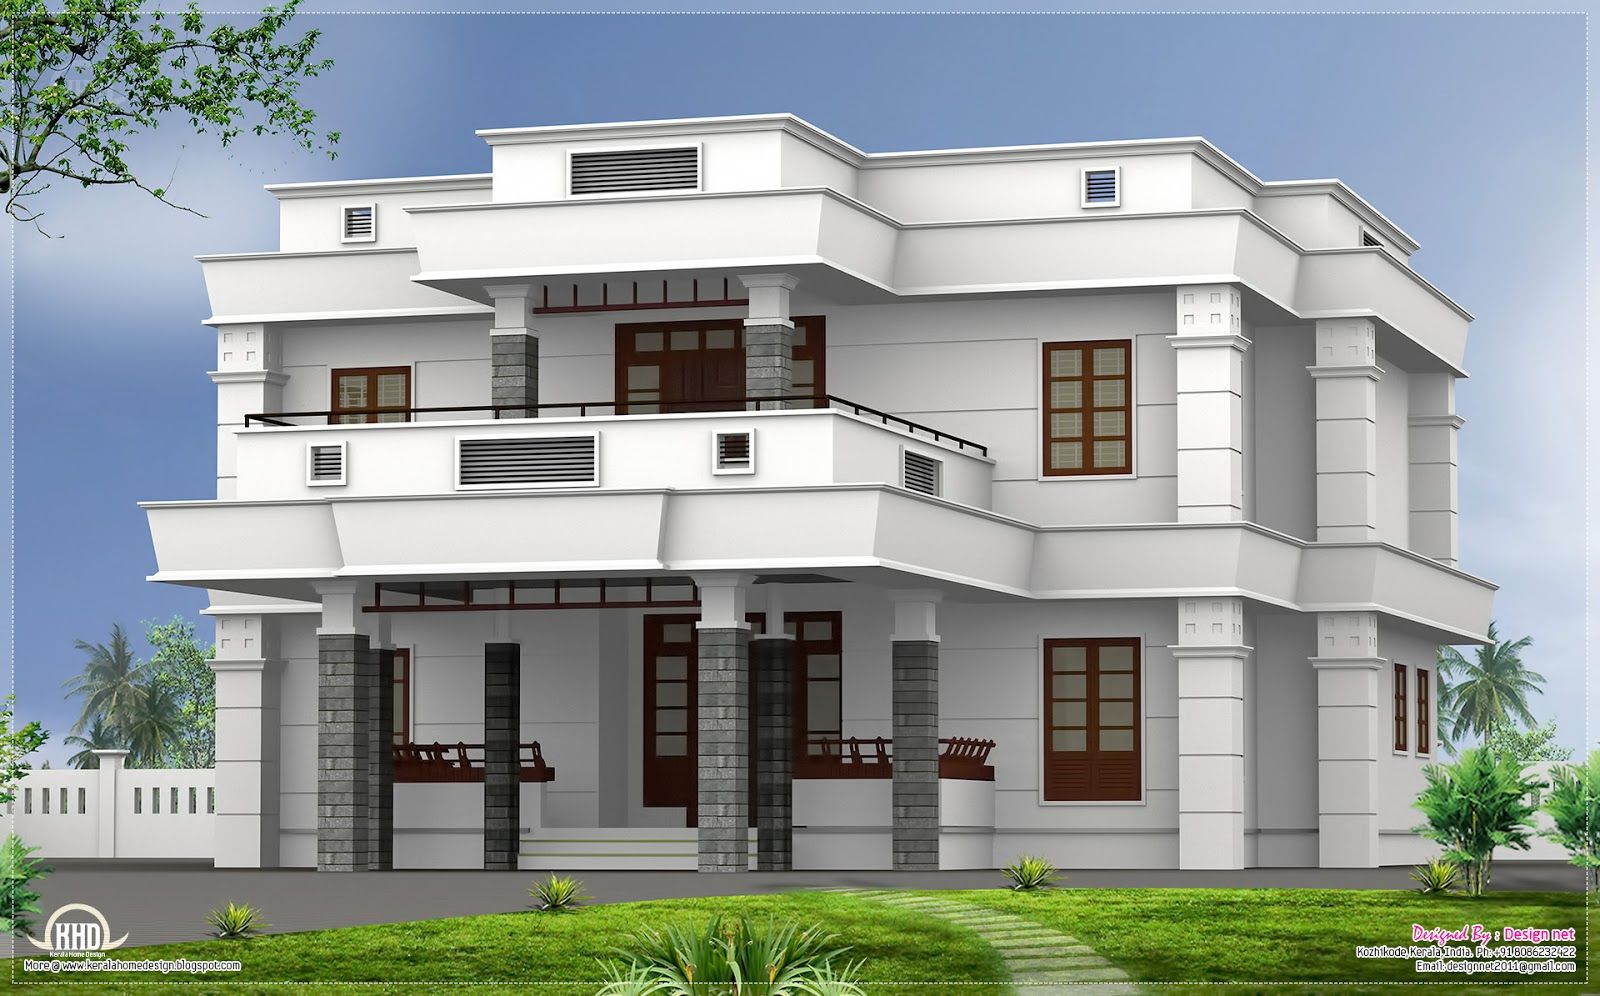 design net flat design house design indian house house elevation